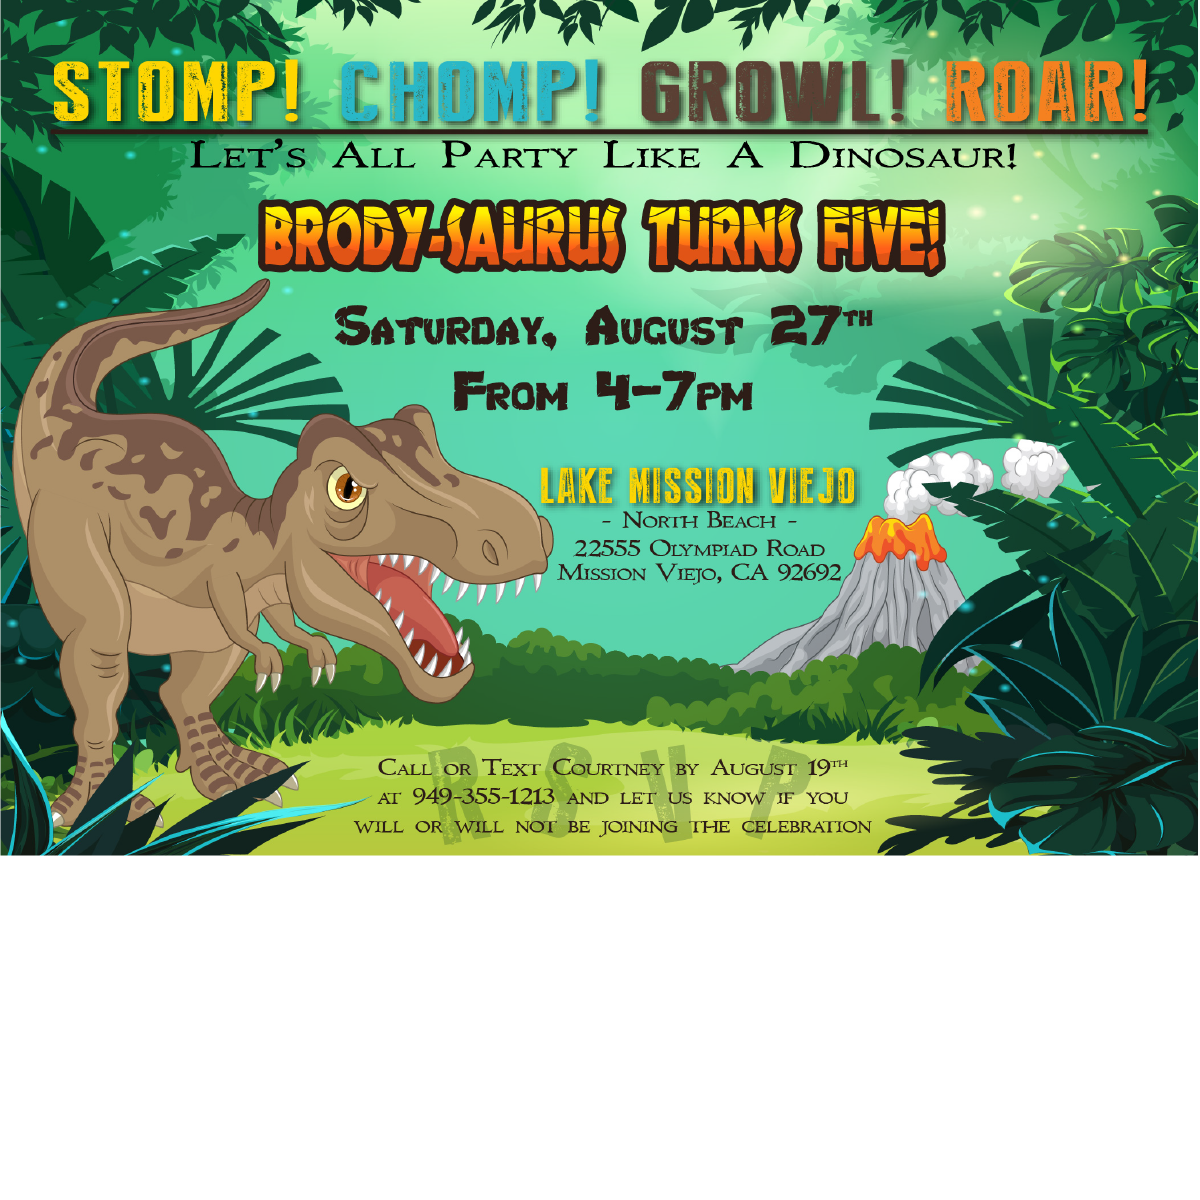 Dinosaur birthday invitations blackline dinosaur birthday invitations filmwisefo